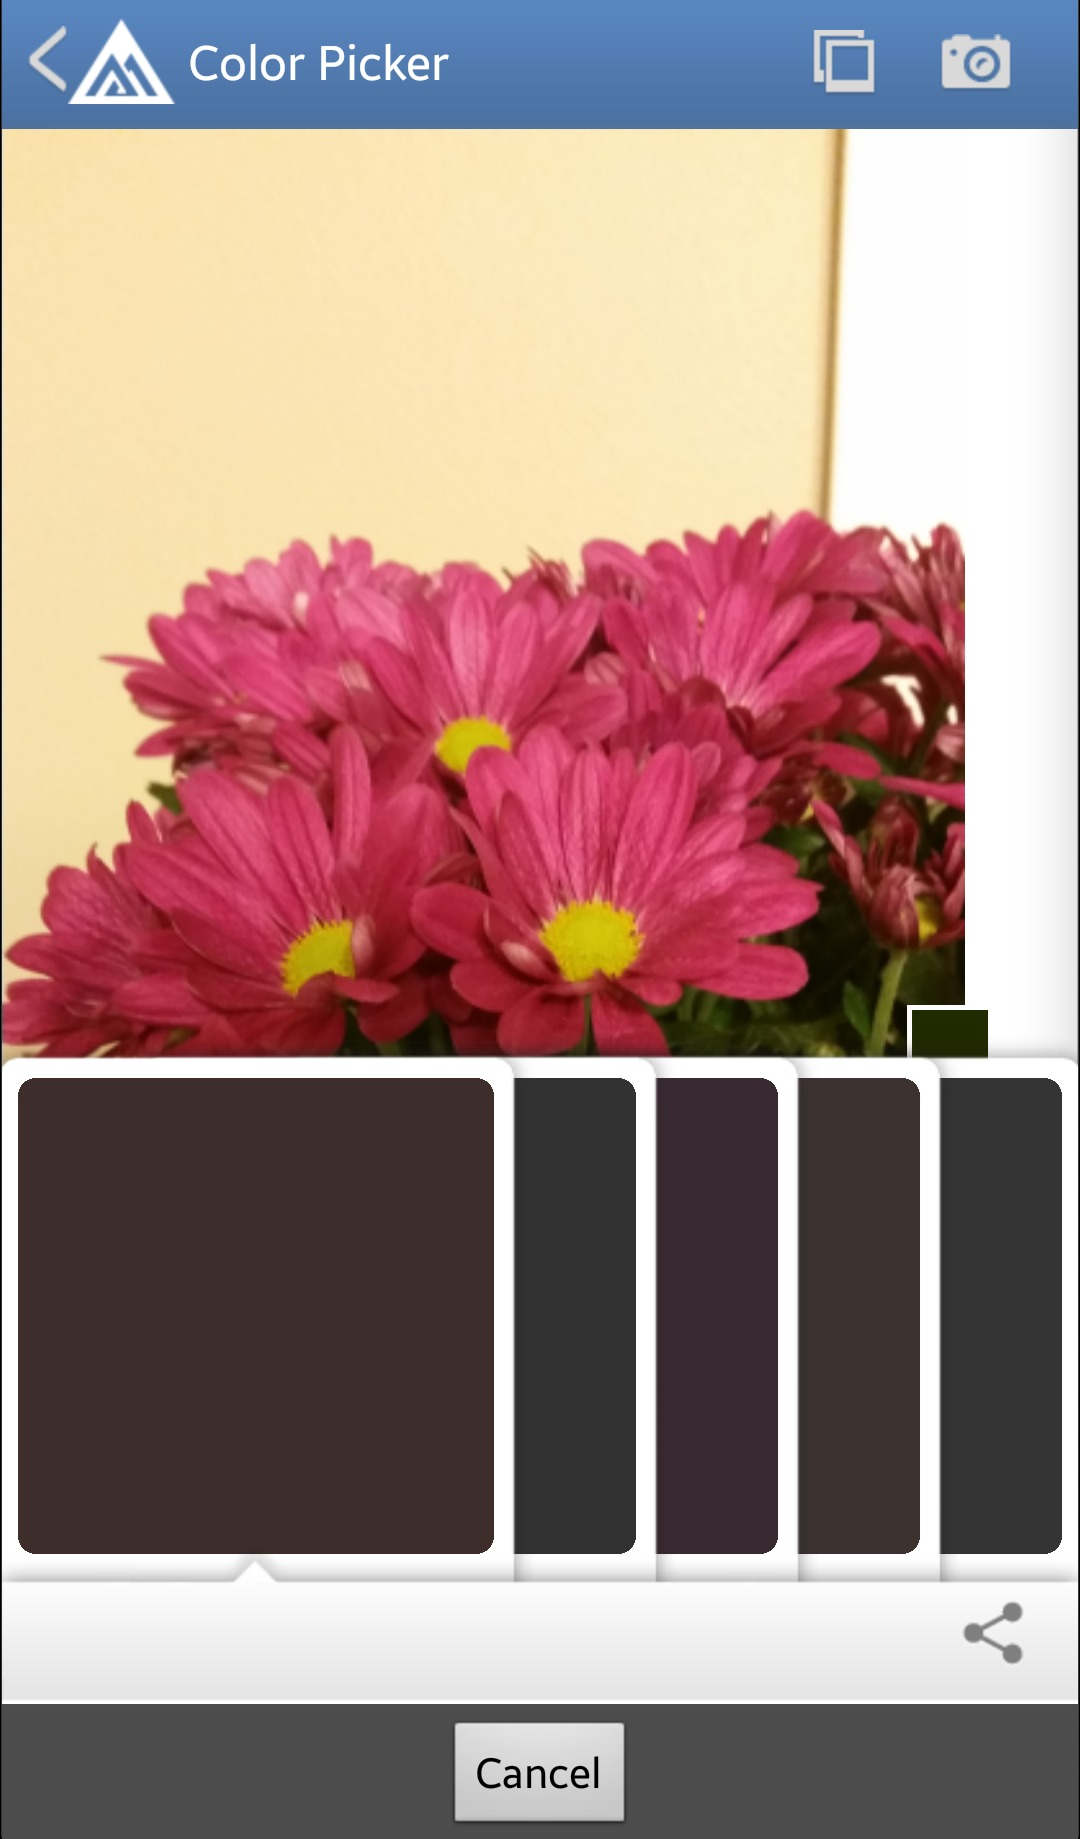 Benjamin Moore Color Picker - Free Android DIY App to Select a Paint Color from a & Remodelaholic | Apps to Match and Find Paint Color Palettes from a Photo